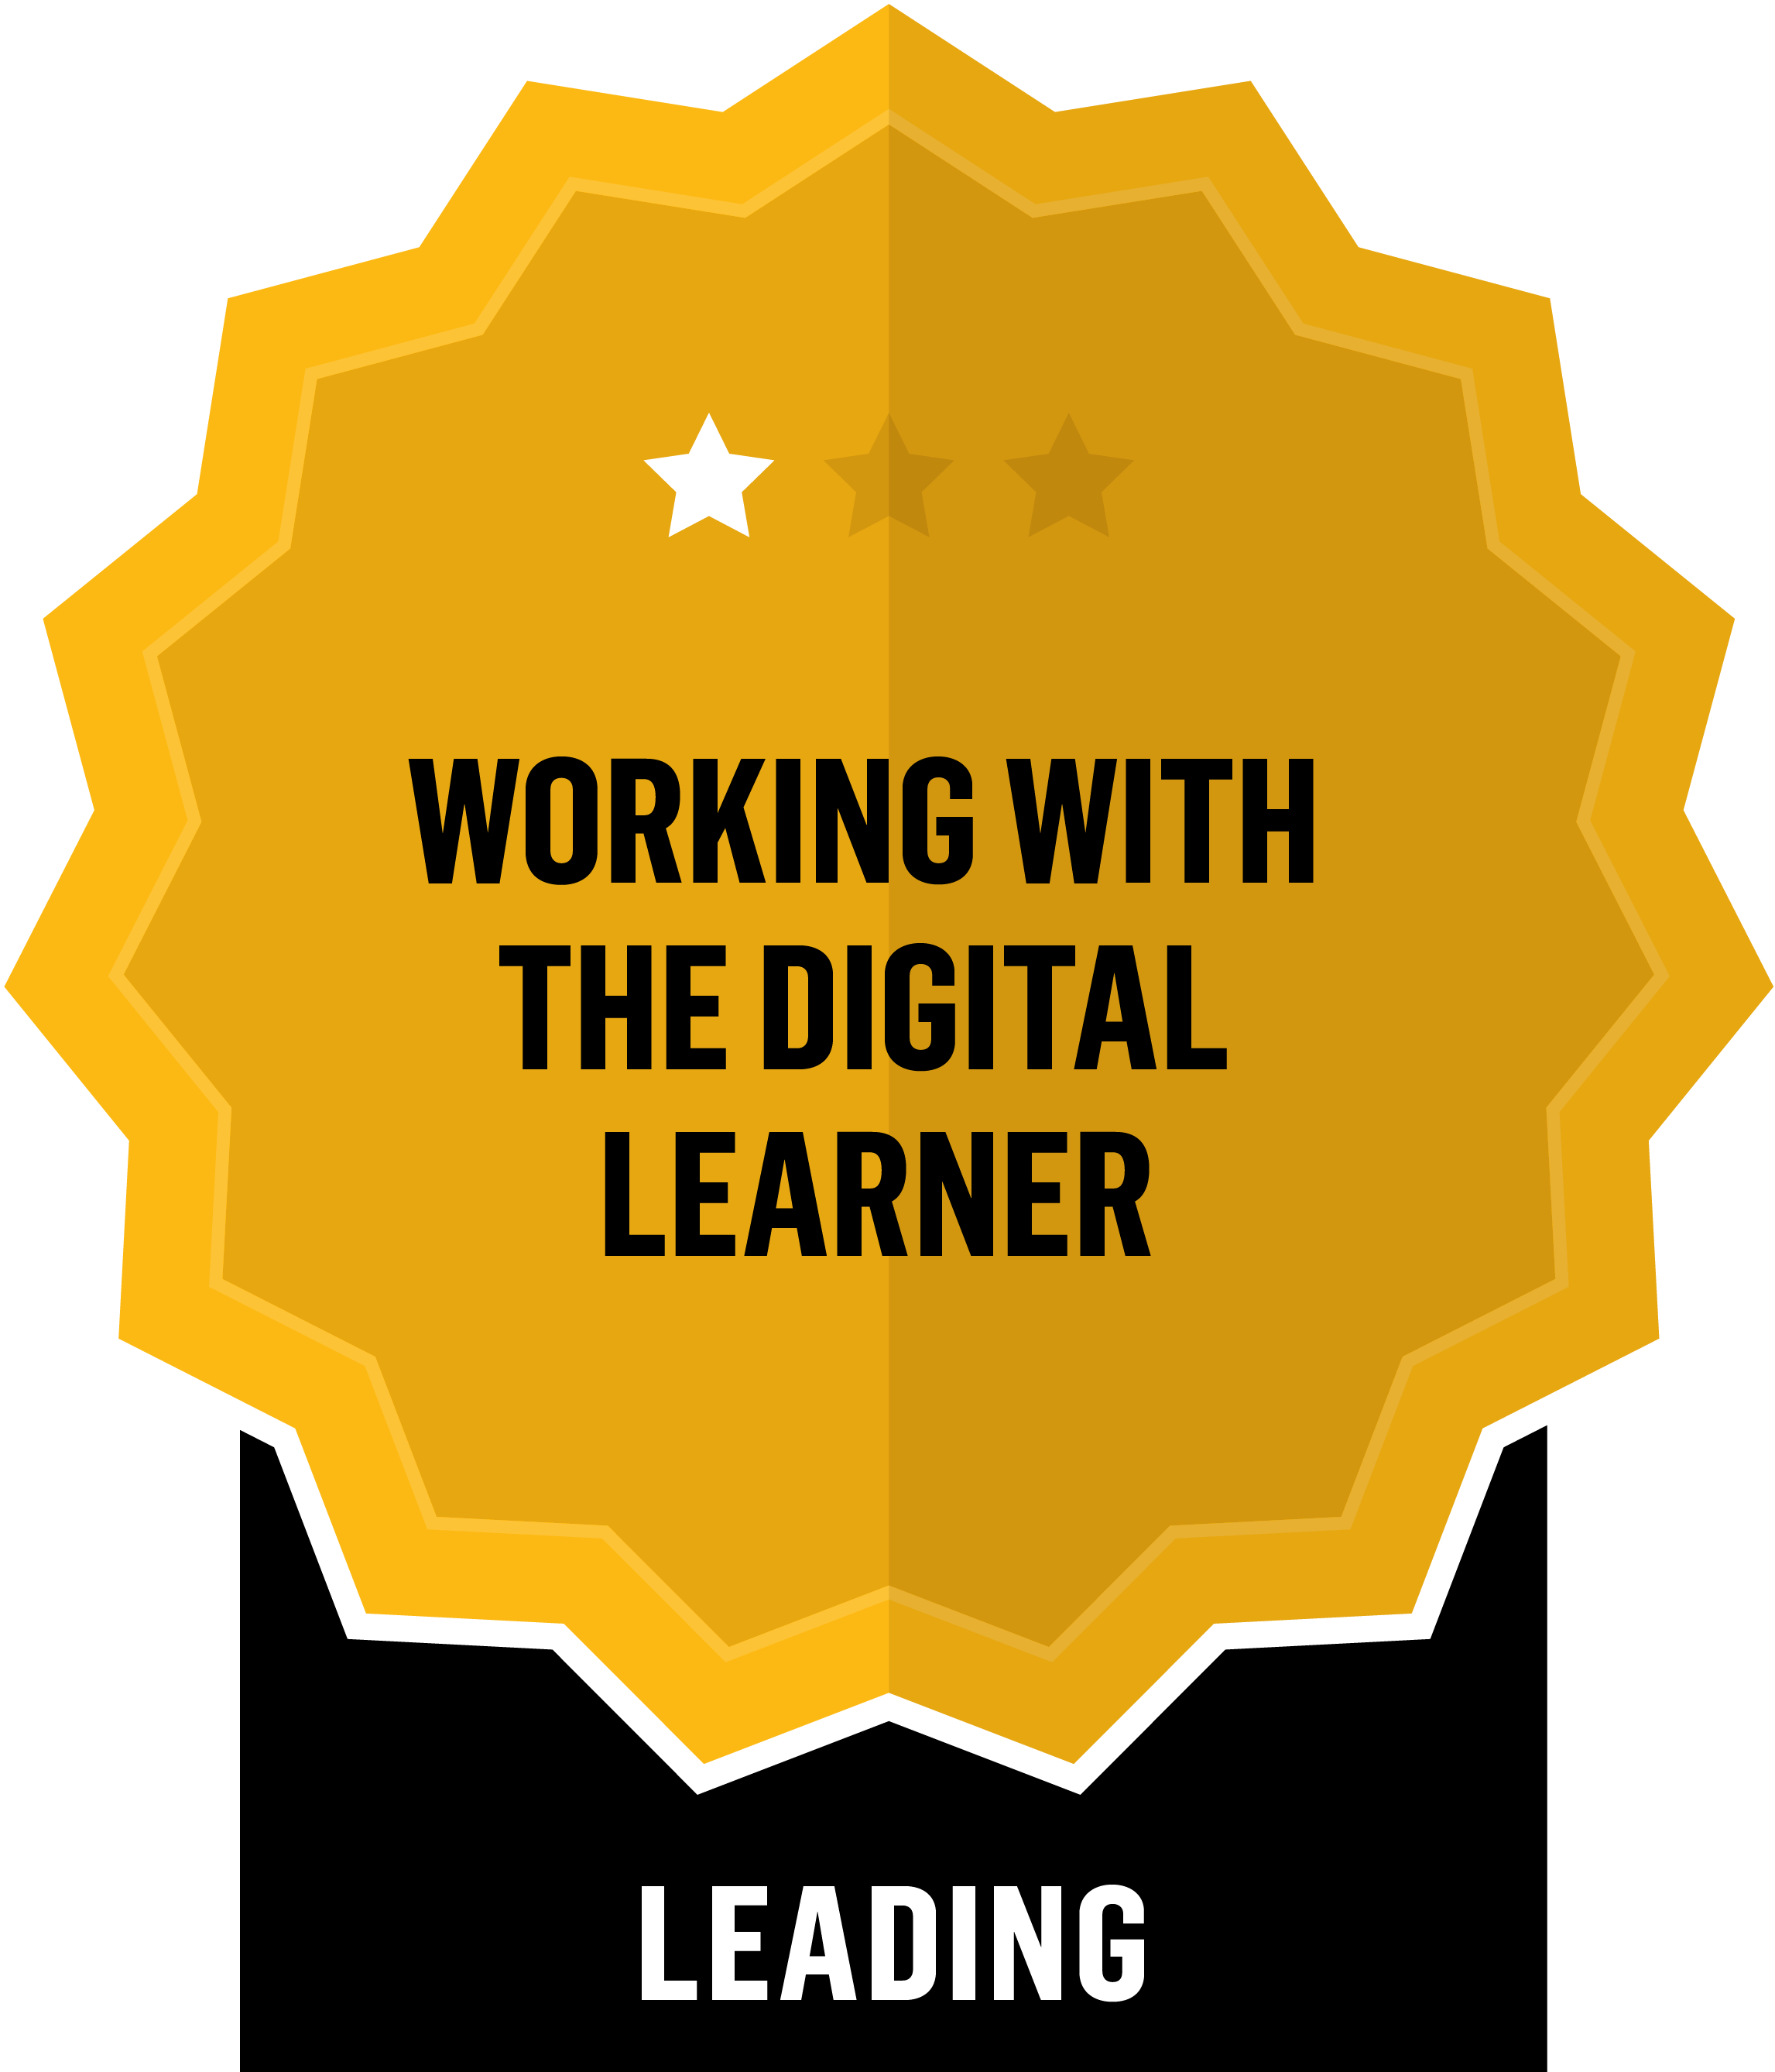 Working with the Digital Learner - Leading